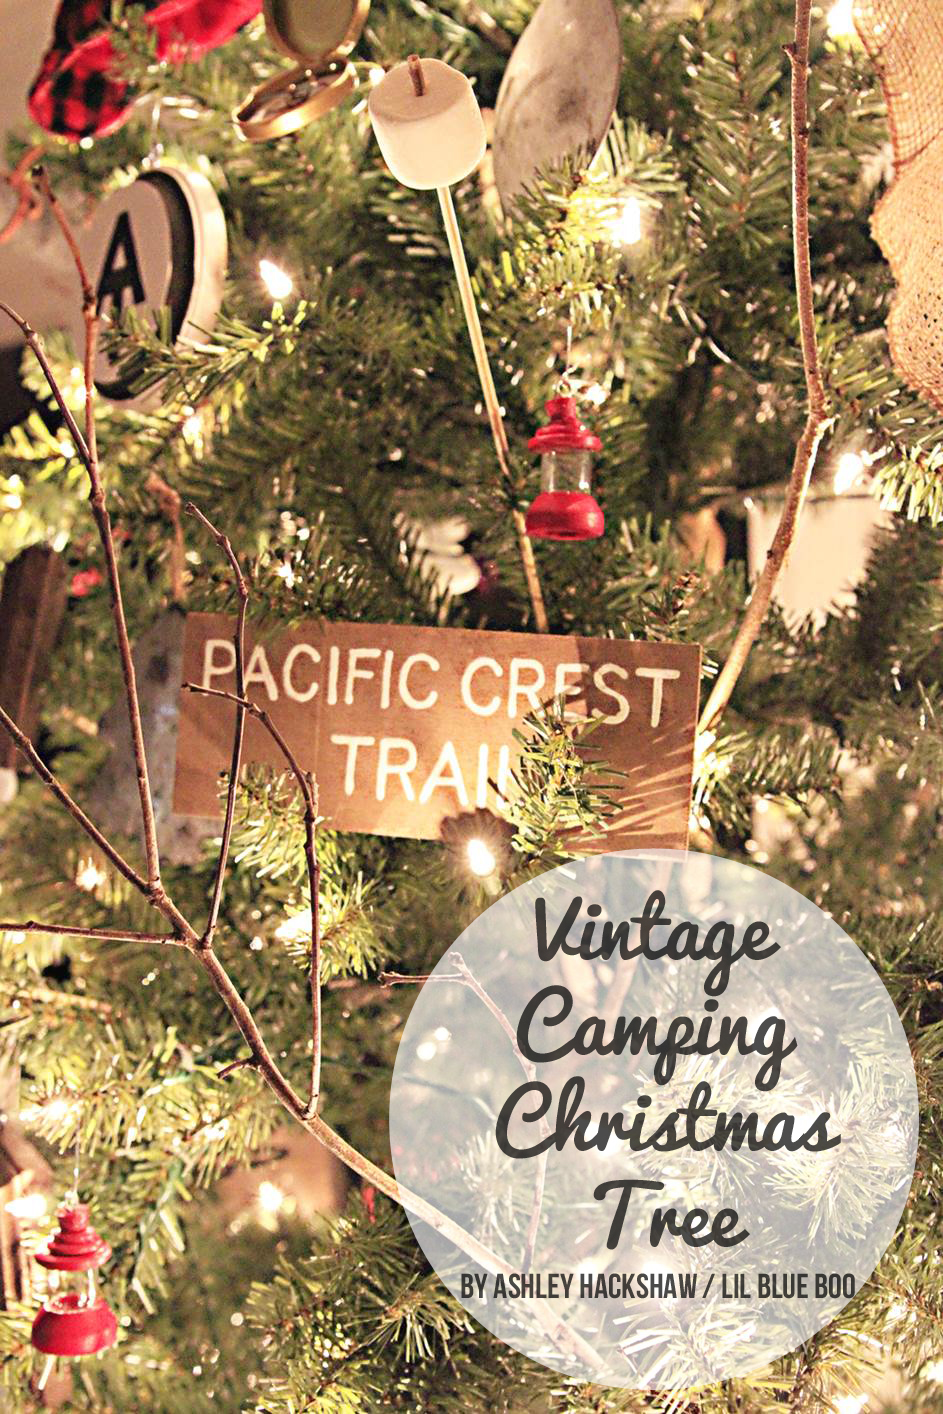 Vintage camping theme tree michaels makers dream tree challenge 2015